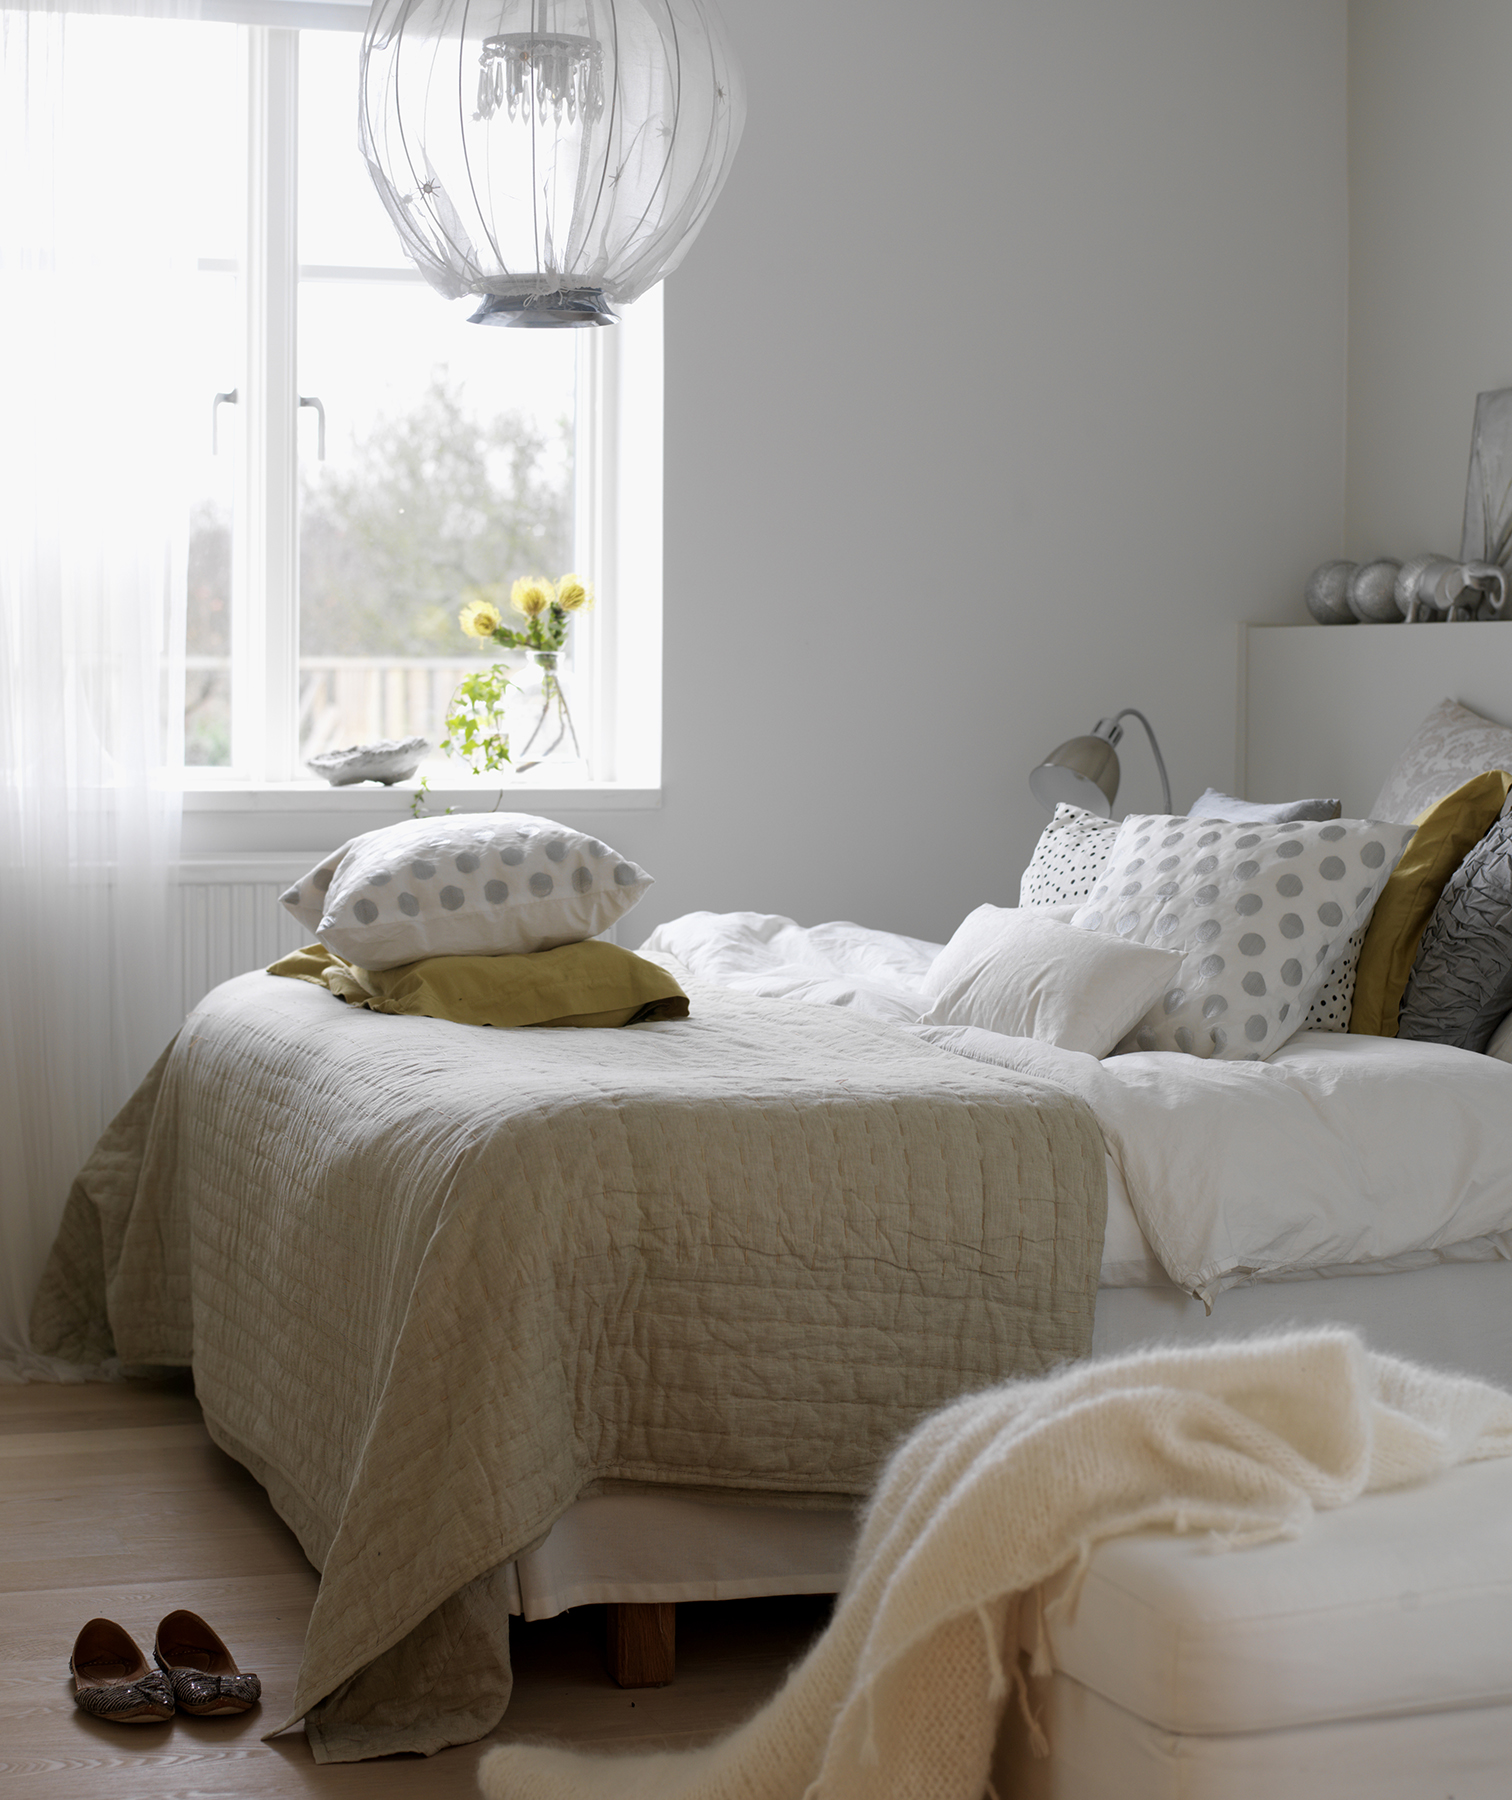 Nice House Decorating Ideas: 23 Decorating Tricks For Your Bedroom